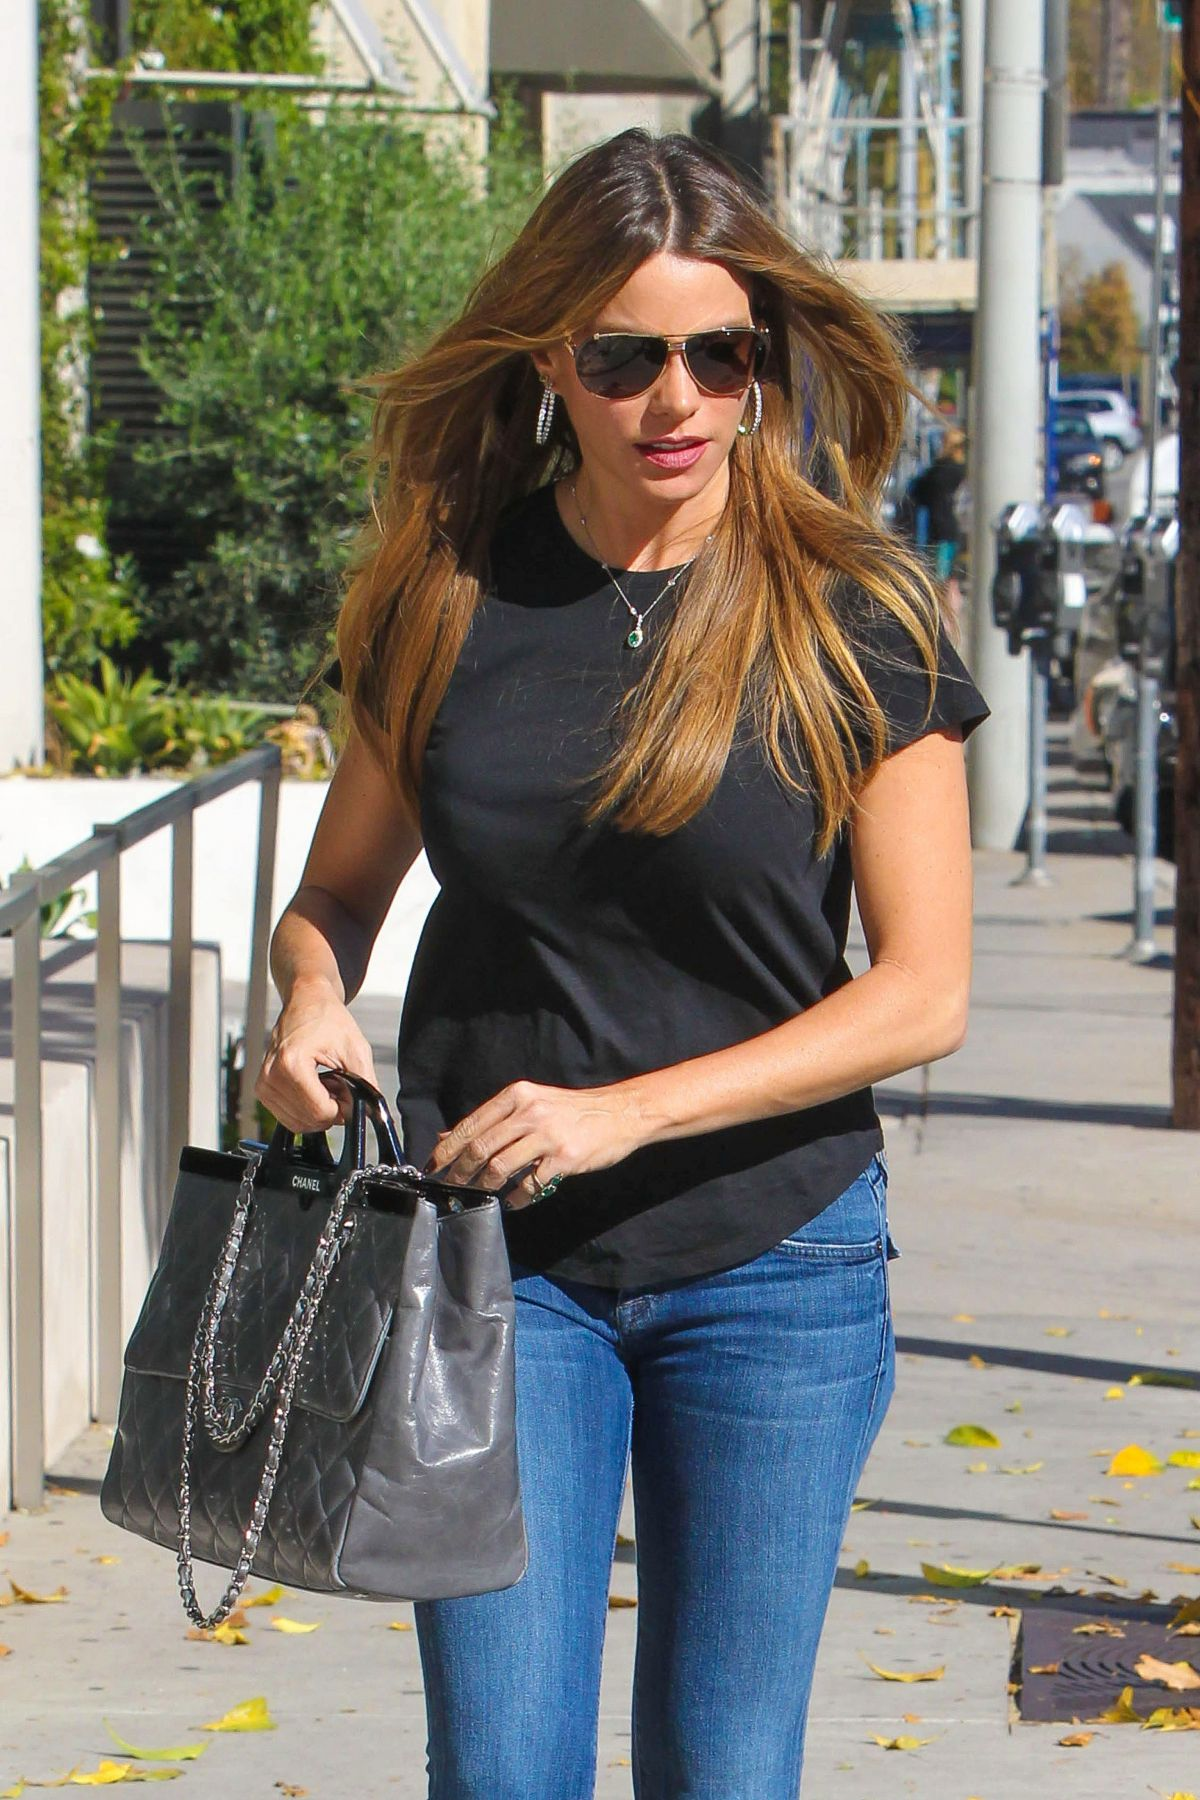 SOFIA VERGARA in Jeans Shopping in Beverly Hills - HawtCelebs ...